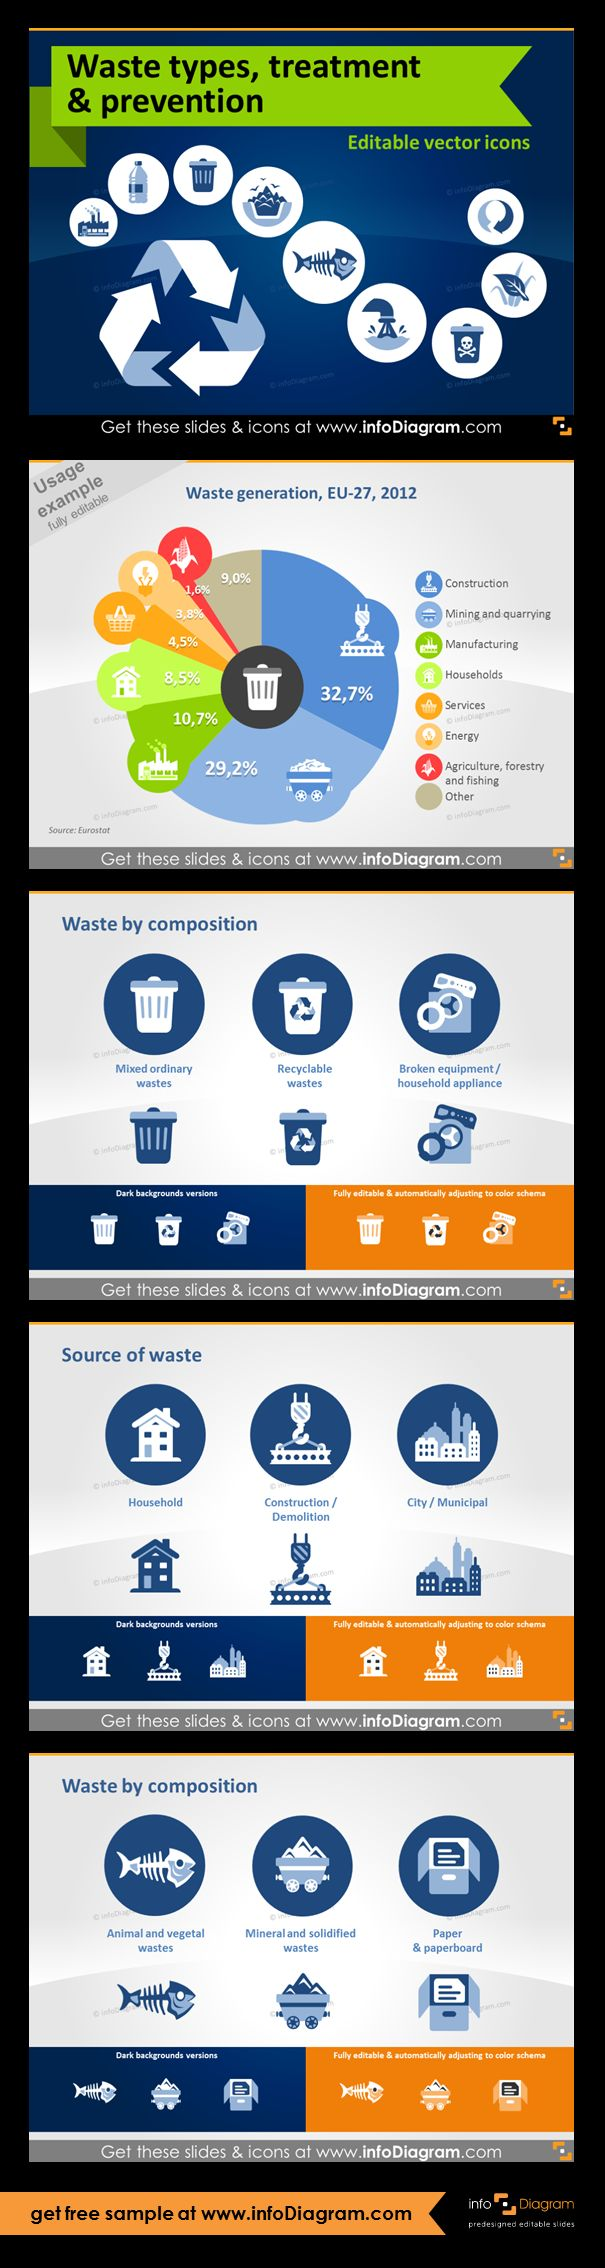 Waste and Ecology icons and visuals for waste industry presentations. Format: fully editable vector shapes in PowerPoint (color, filling, size - no quality loss when zoomed). Waste generation, EU-27, 2012 (chart with pictograms). Waste by composition and types of waste: Animal and vegetal wastes, Mineral and solidified wastes, Paper and paperboard. Sources of waste: Households, Construction / Demolition, City / Municipal, Industry and Commerce.